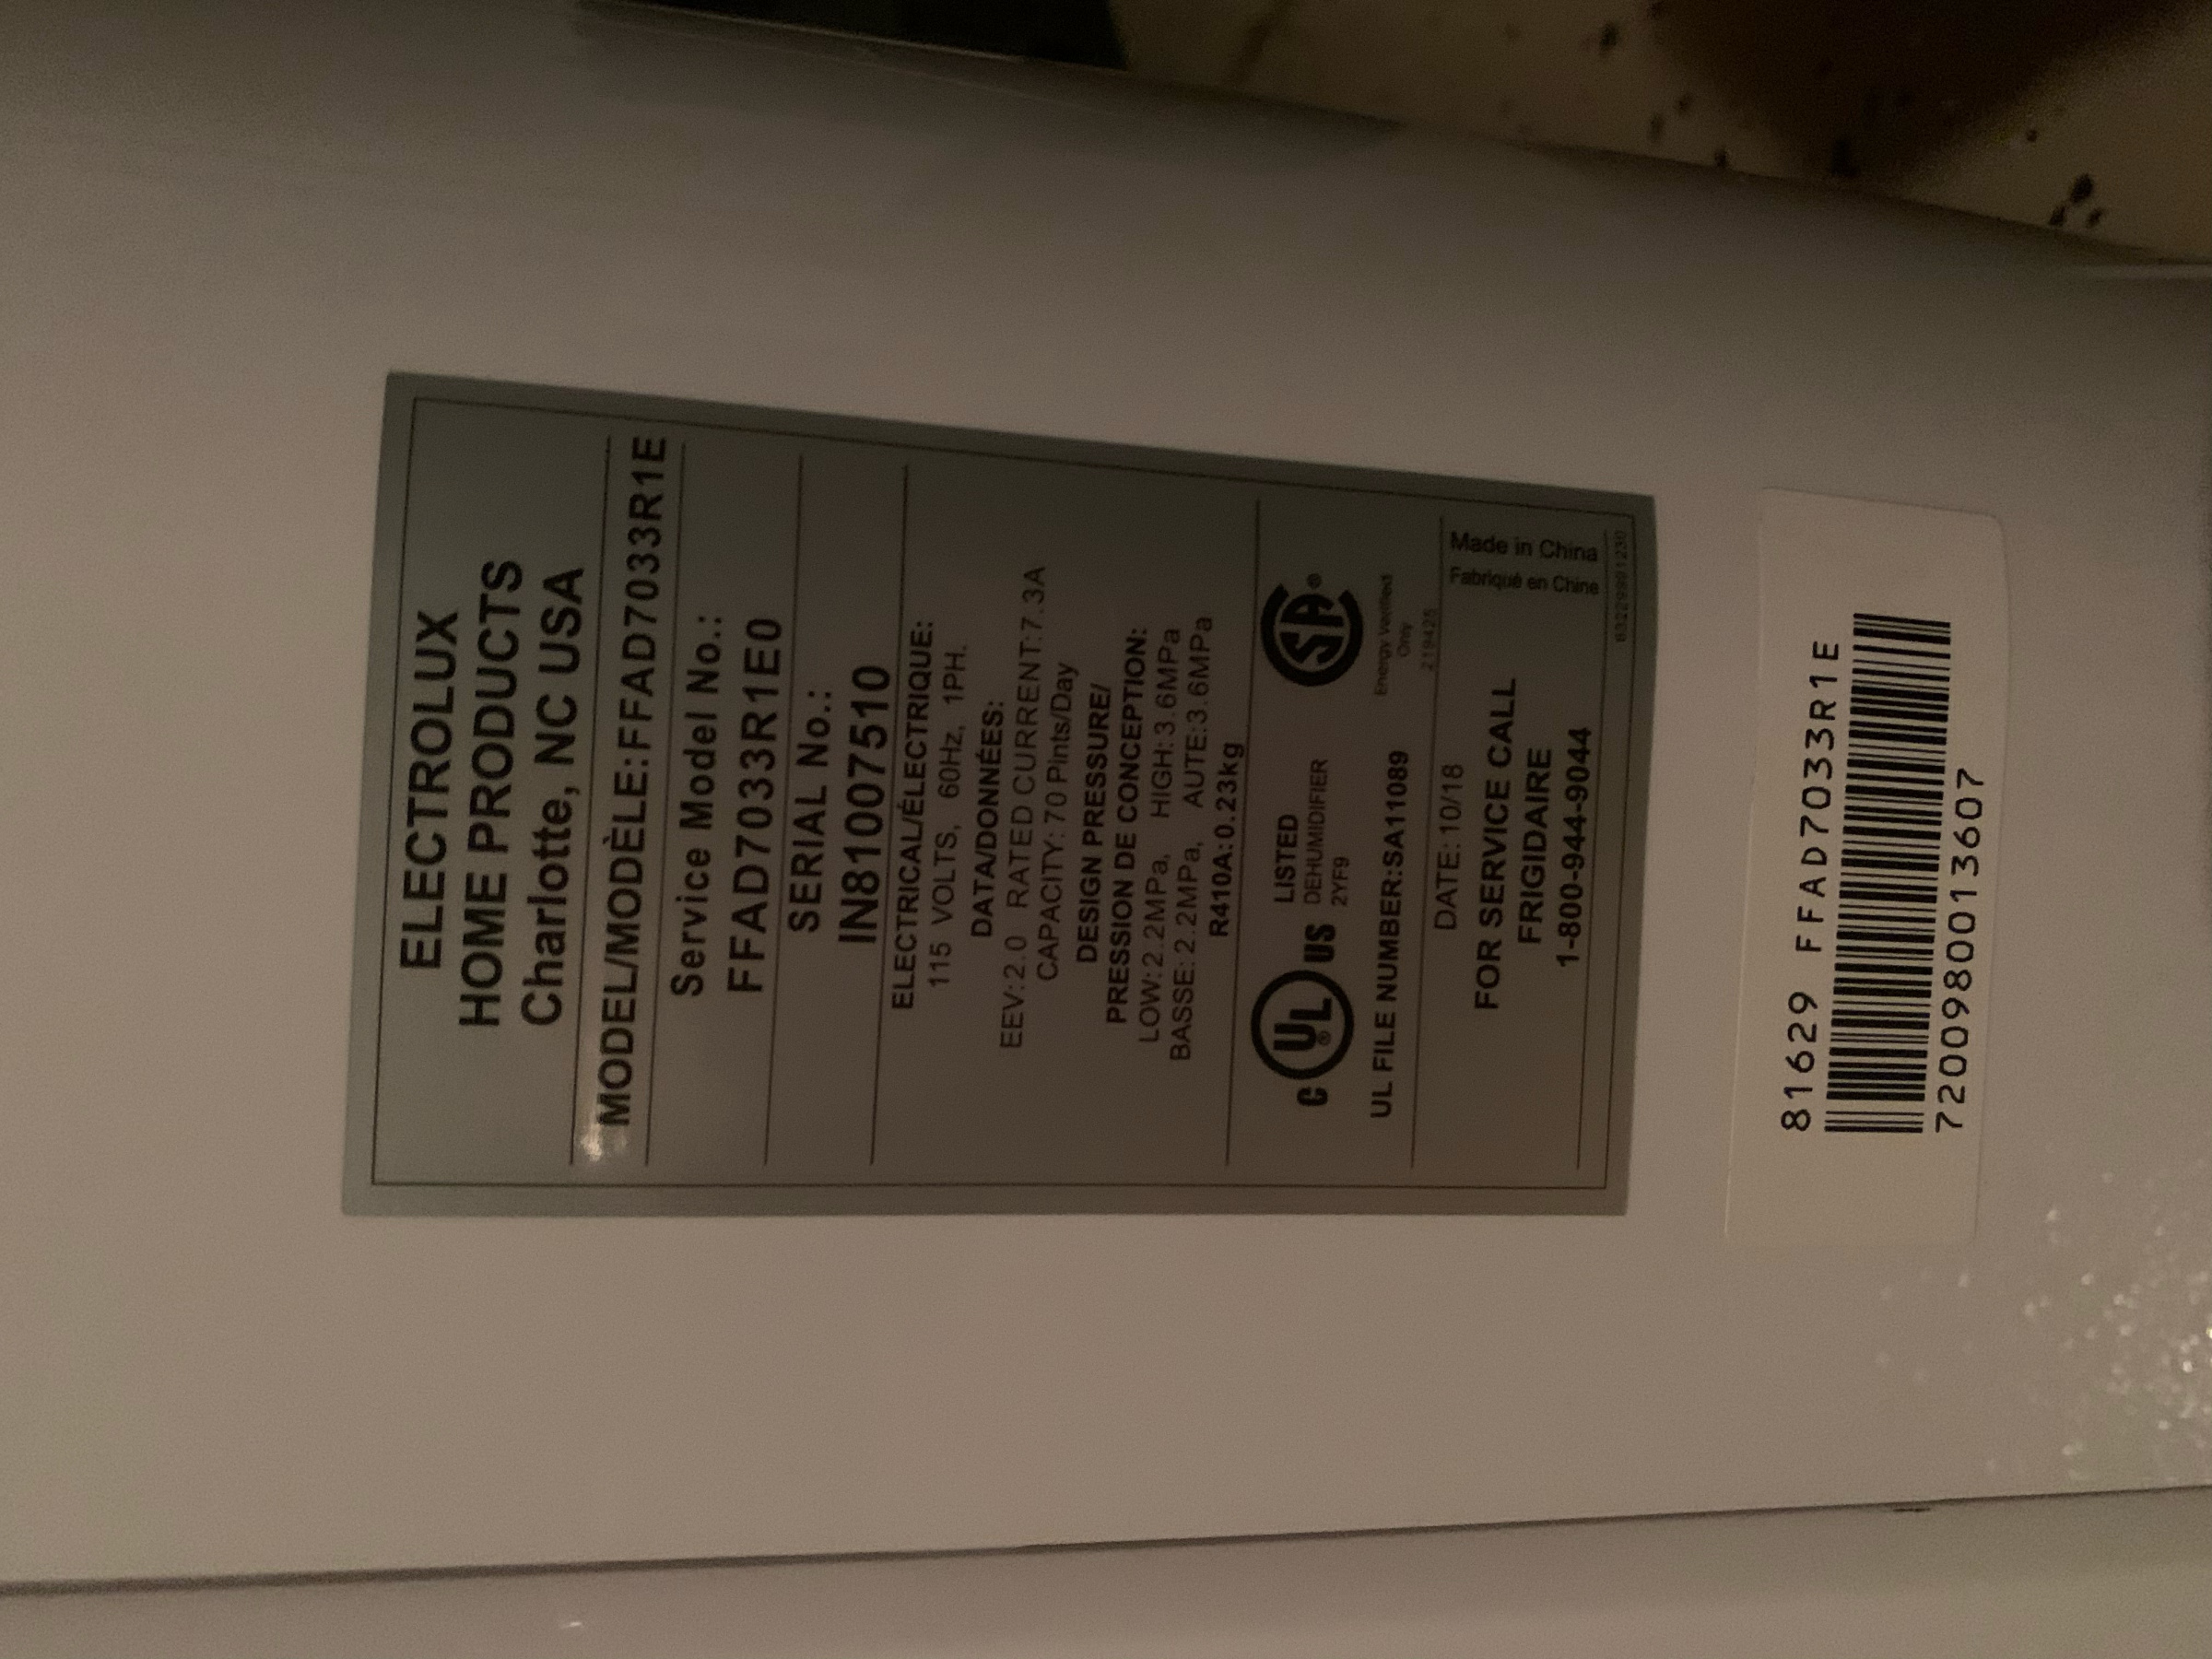 Frigidaire dehumidifier 70 pint. Can it be saved?-0225552d-c675-4e9e-9f37-7bed8bba6ab2.jpg